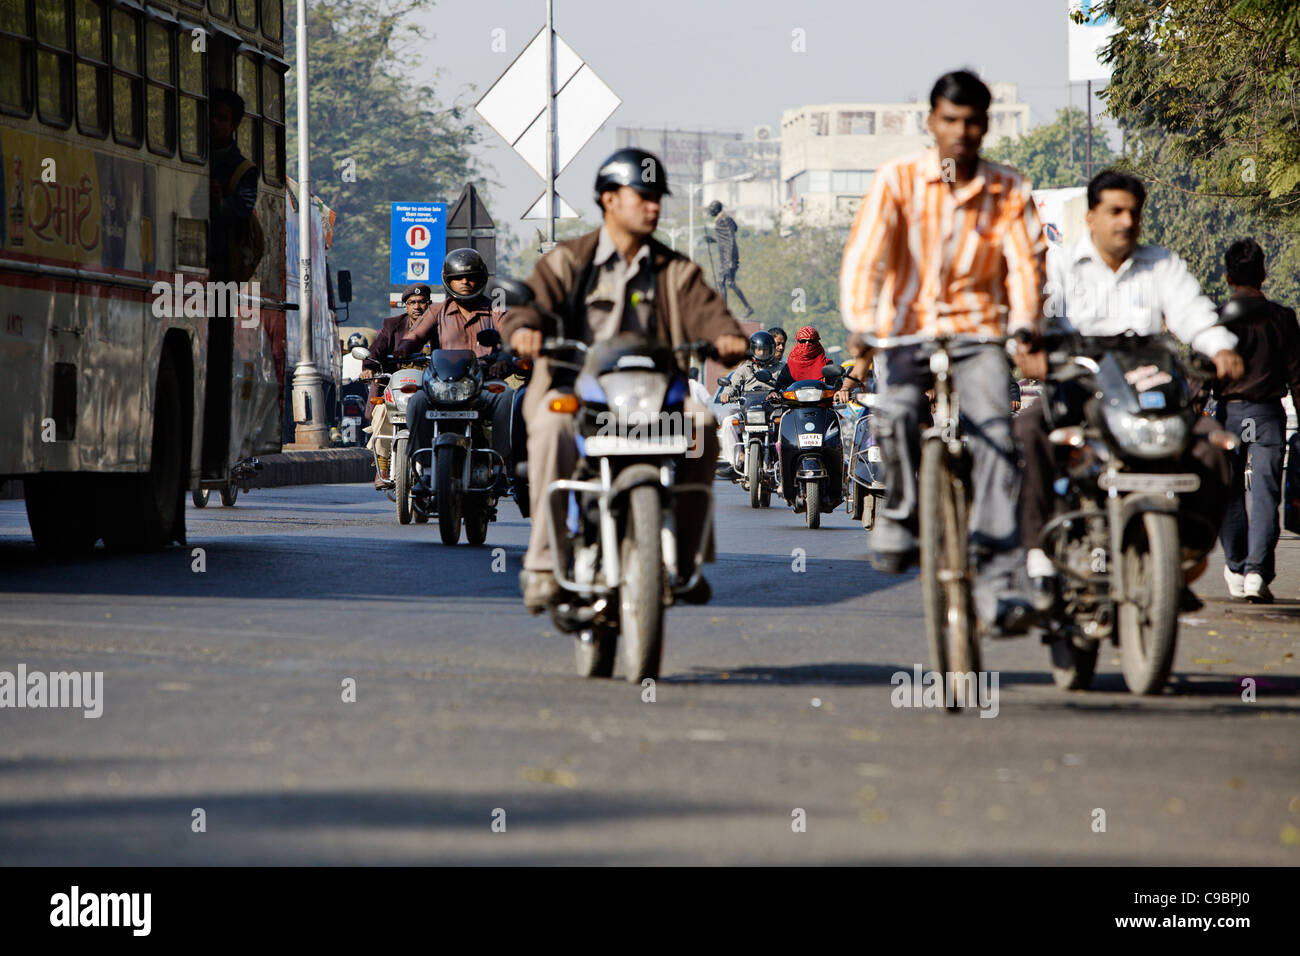 Traffic in Ahmedabad, Gujarat state, India. Statue of Mohandas Gandhi on background. - Stock Image